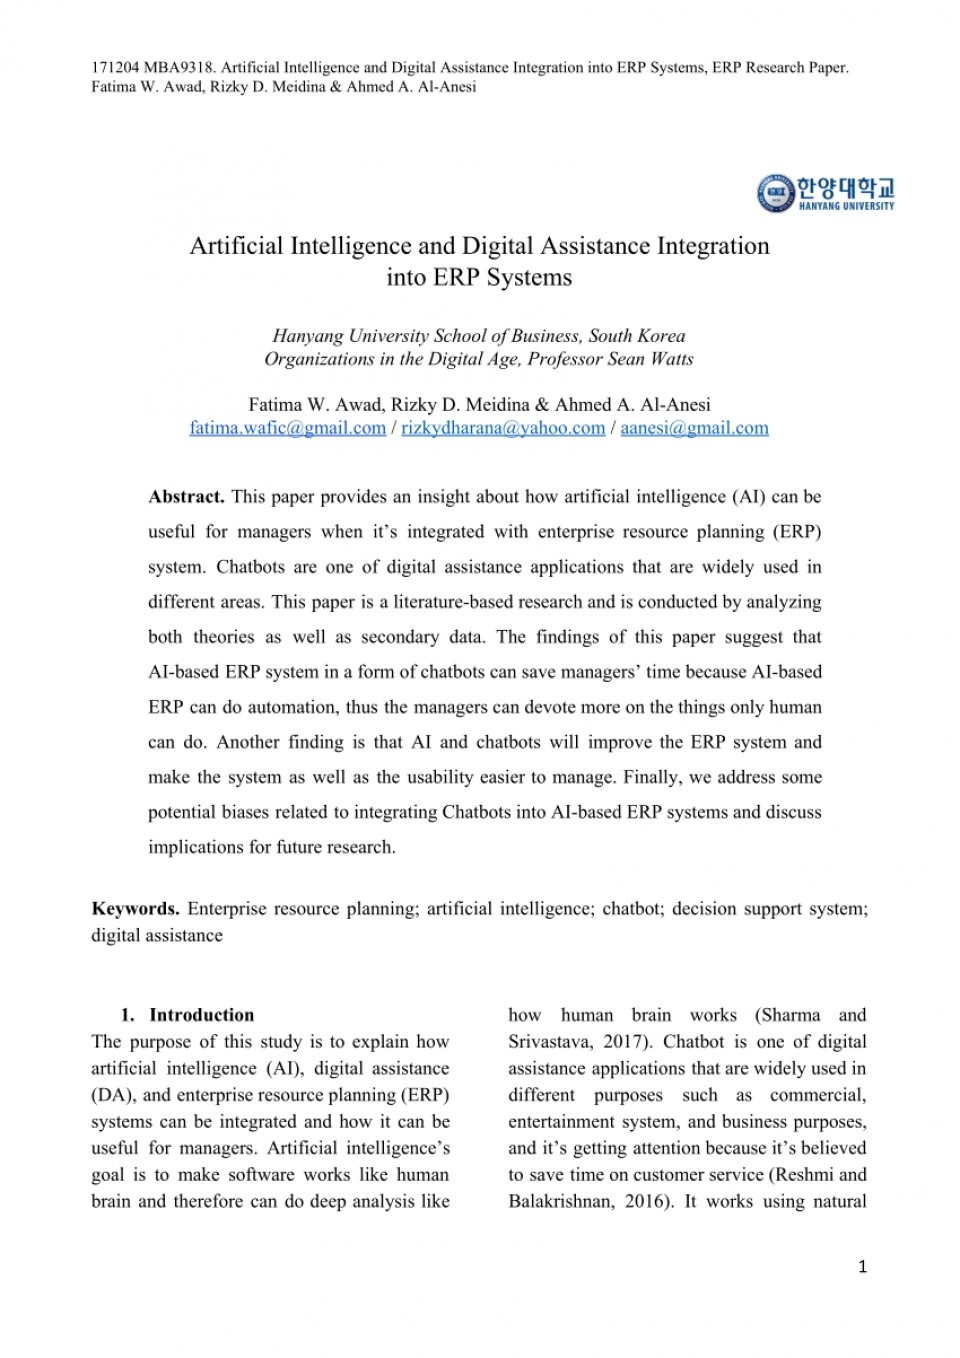 001 Research Paper Largepreview Artificial Intelligence Papers Remarkable Topics 2018 Pdf 960